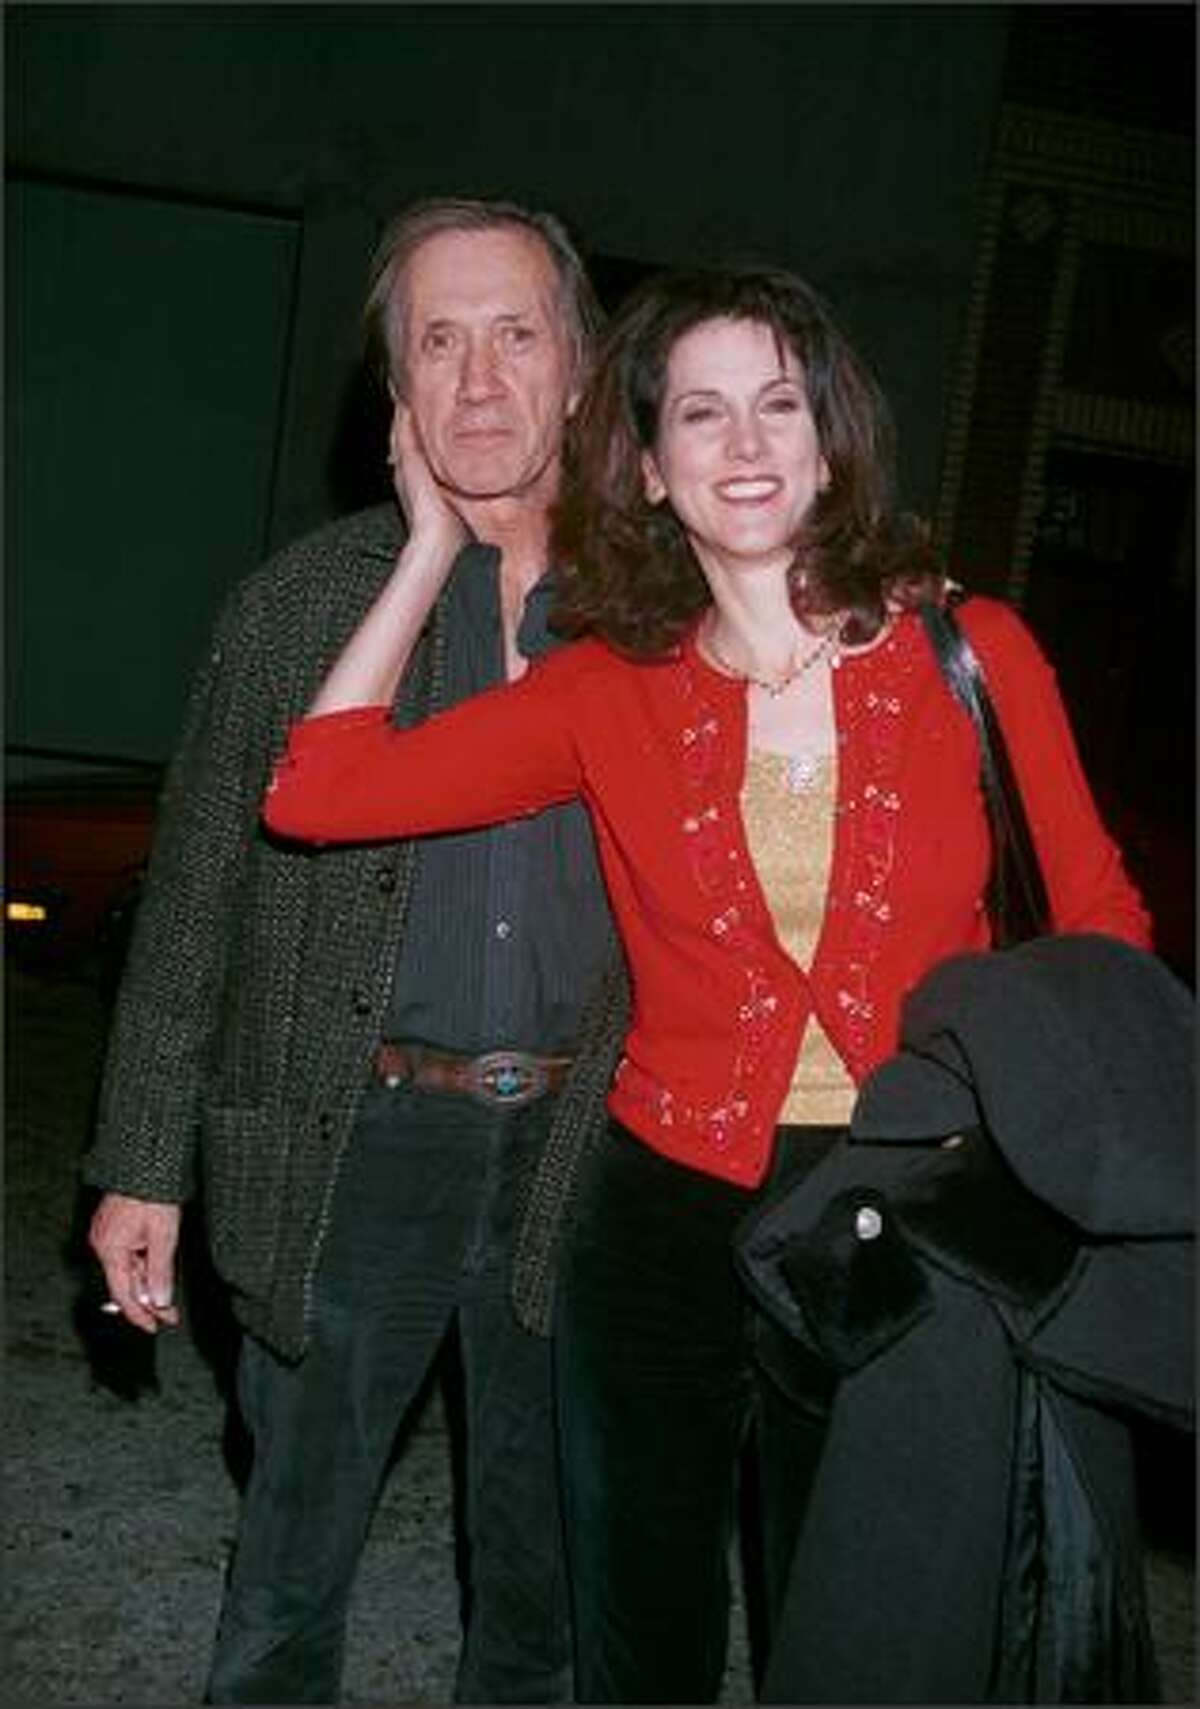 """Actor David Carradine and his fourth wife, Marina, attend a party and final shoot for """"Joe Head Goes Hollywood"""" Dec. 17, 2000 in Venice, Calif. (Photo by Newsmakers)"""